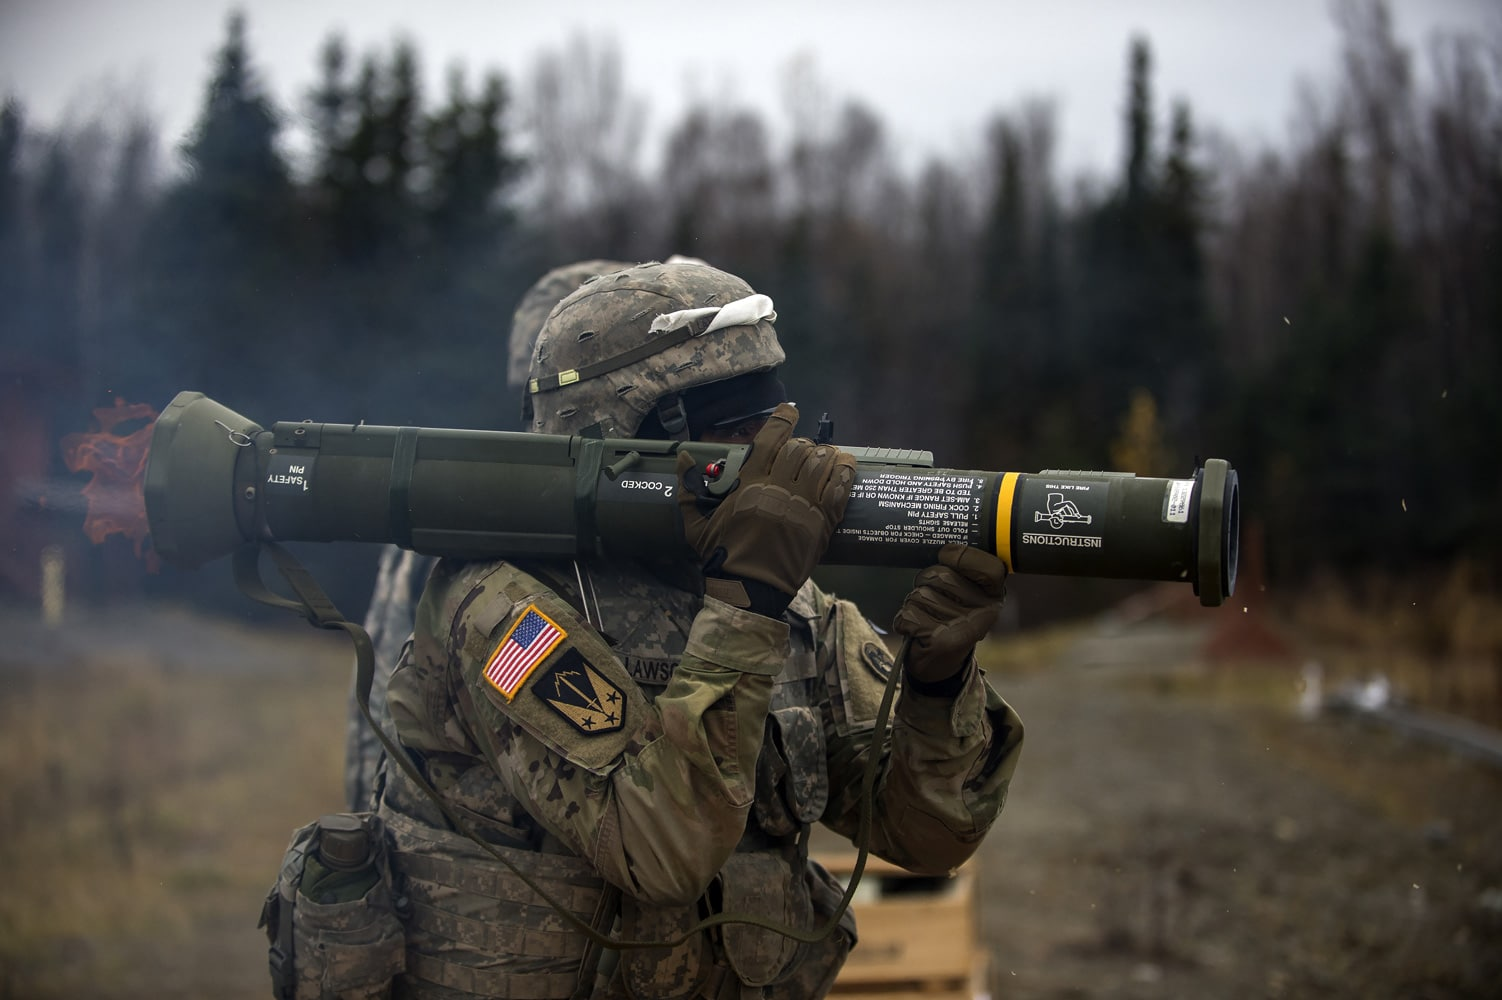 Army Sgt. Derek Lawson, assigned to the 109th Transportation Company, 17th Combat Sustainment Support Battalion, U.S. Army Alaska, fires the M136E1 AT4-CS confined space light anti-armor weapon at Joint Base Elmendorf-Richardson, Alaska.